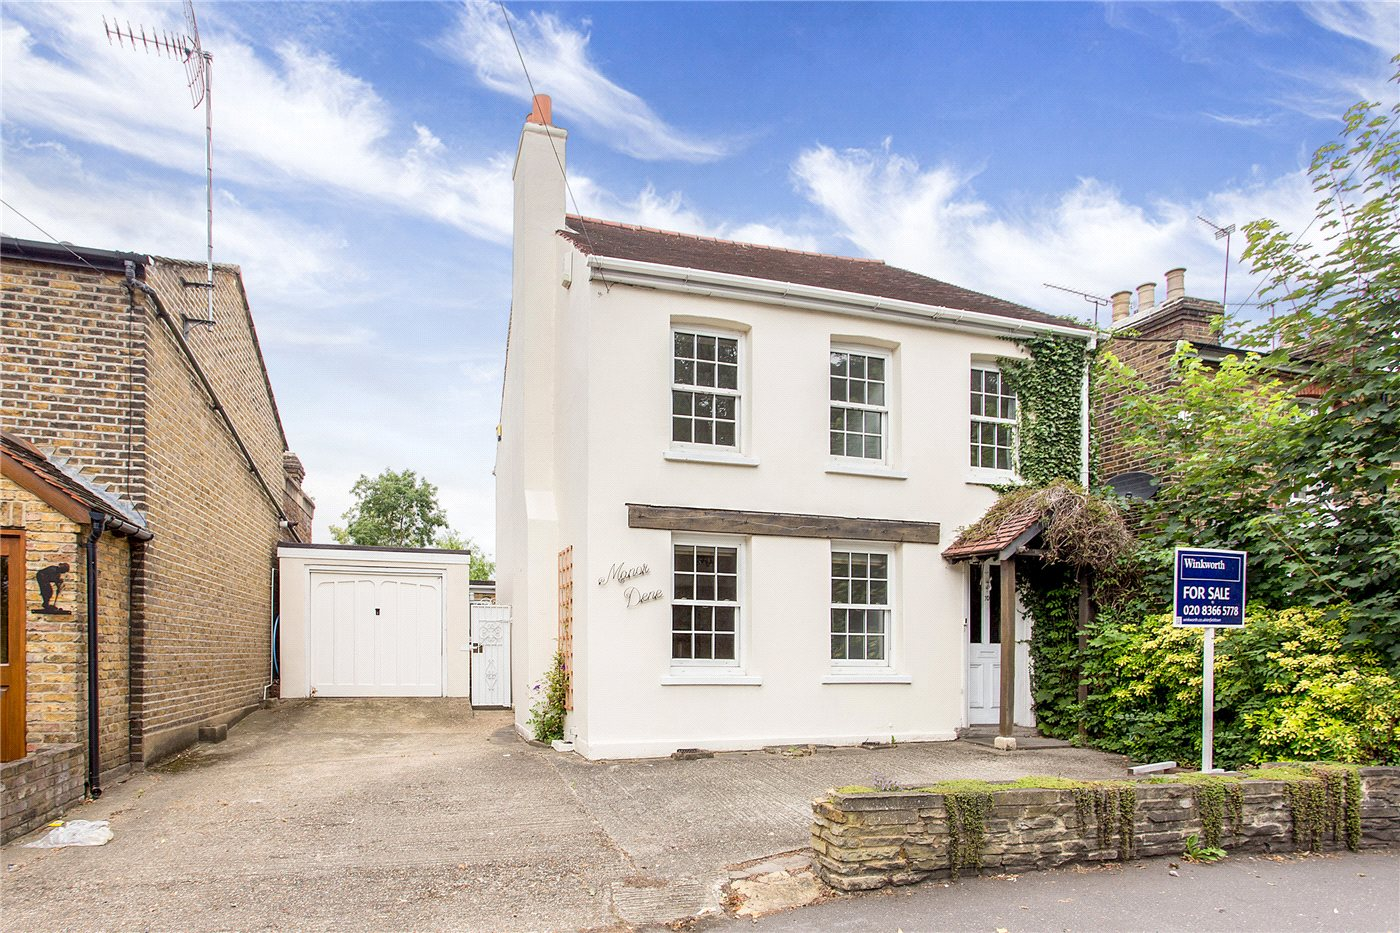 4 Bedrooms Detached House for sale in Bulls Cross, Enfield, Middlesex, EN2